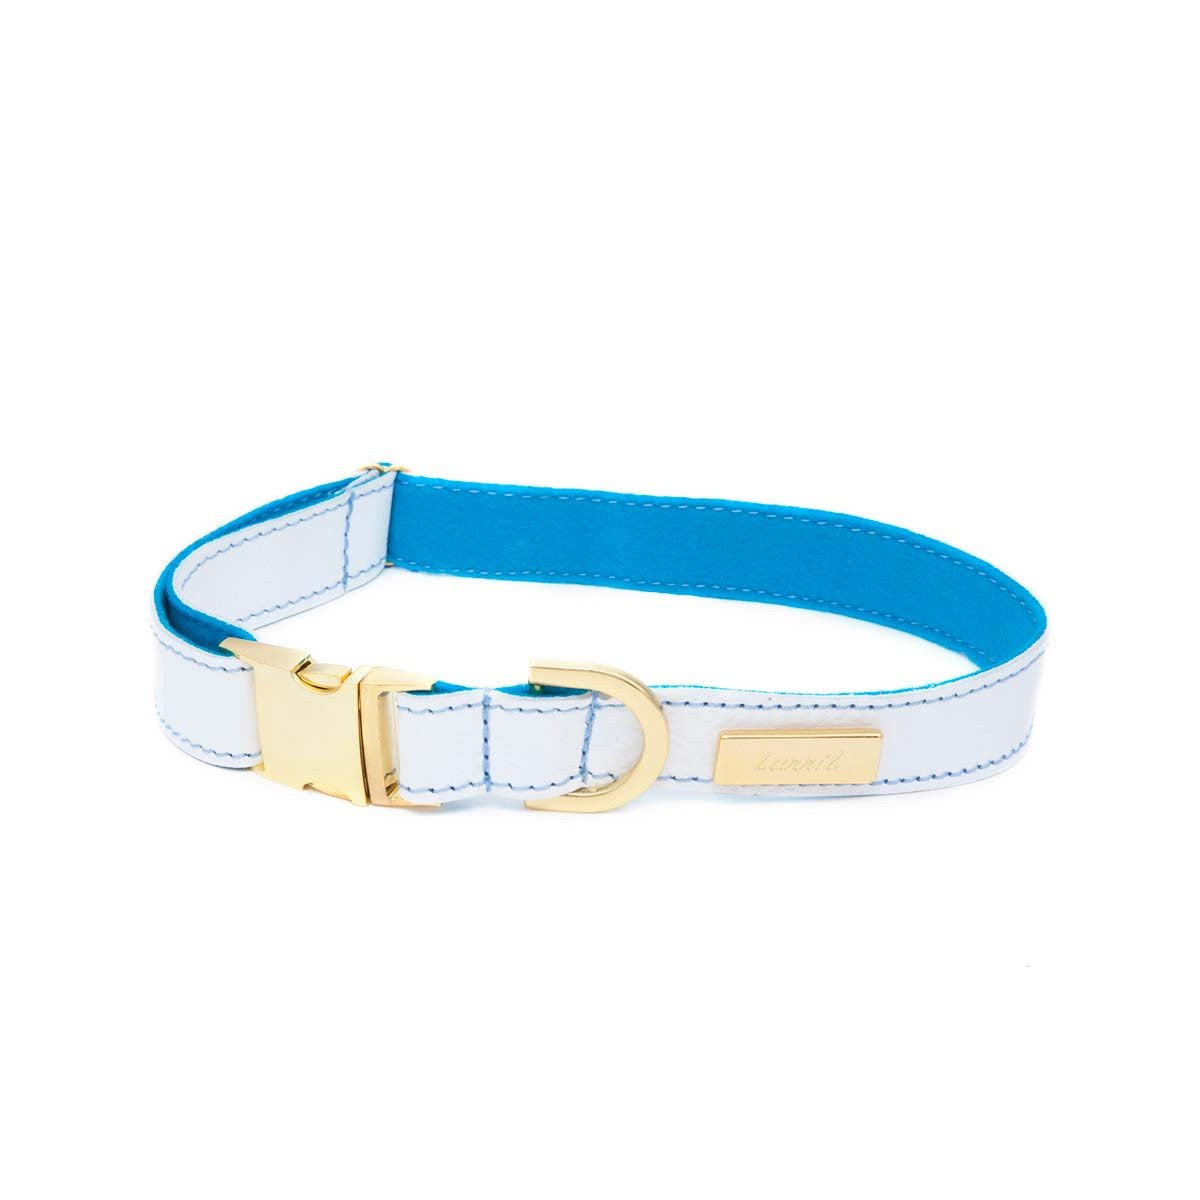 Labrador Dog Collar - Durable, Soft White Leather with Soft Wool Lining